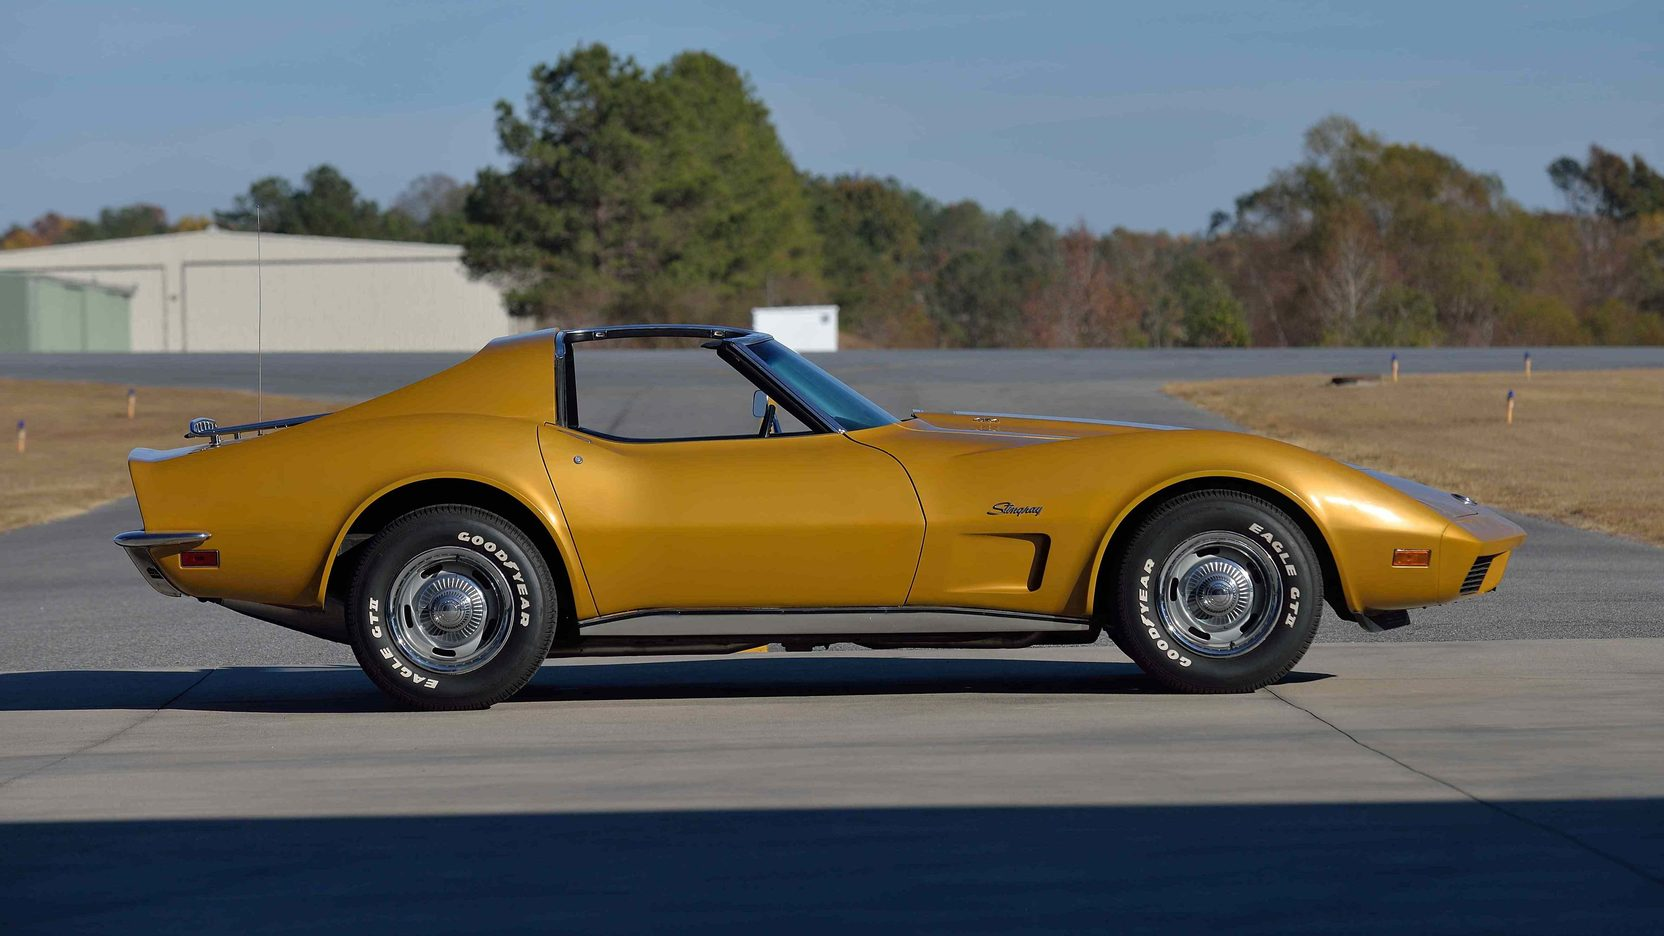 1974 Chevrolet Corvette 454 big block side view